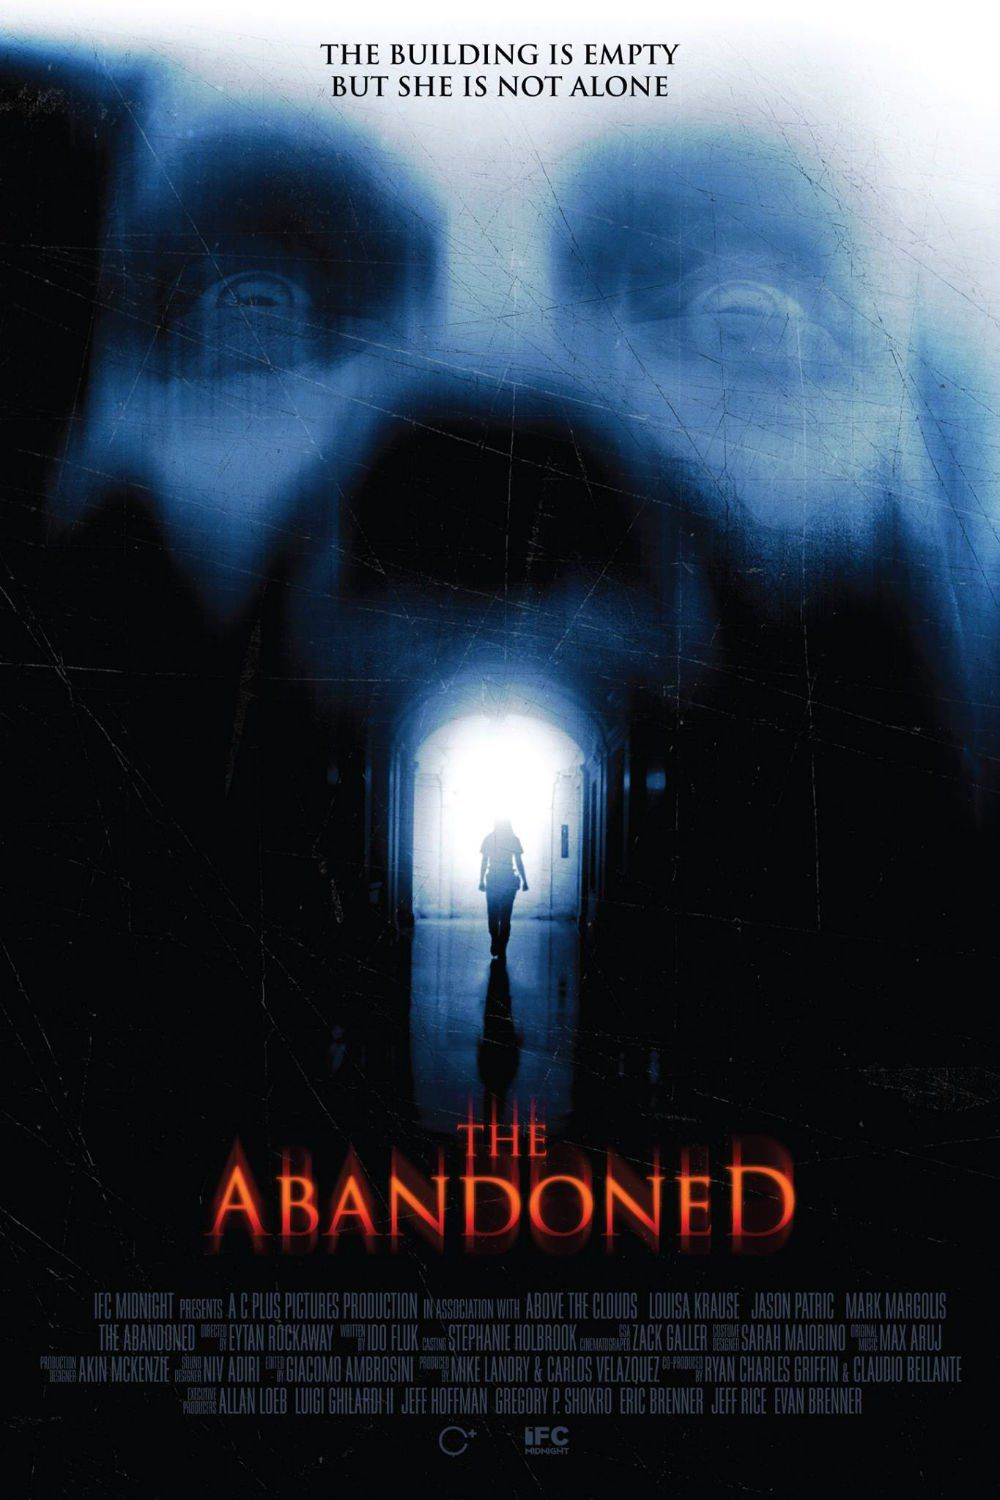 The Abandoned 2015 Horror Movie Posters Full Movies Online Free Scary Movies